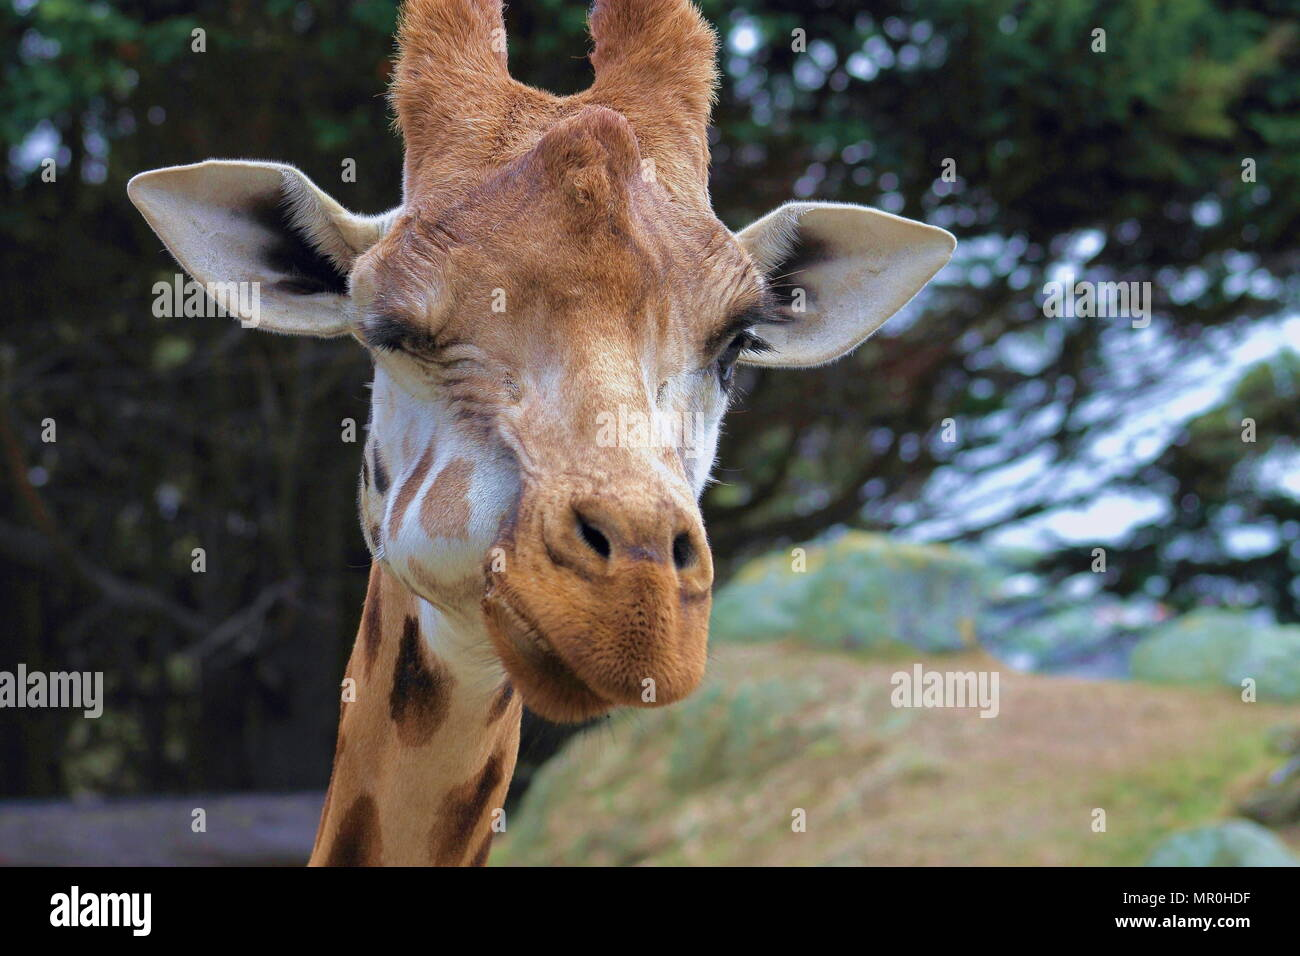 Gros plan d'une Girafe (Giraffa camelopardalis) winking Photo Stock